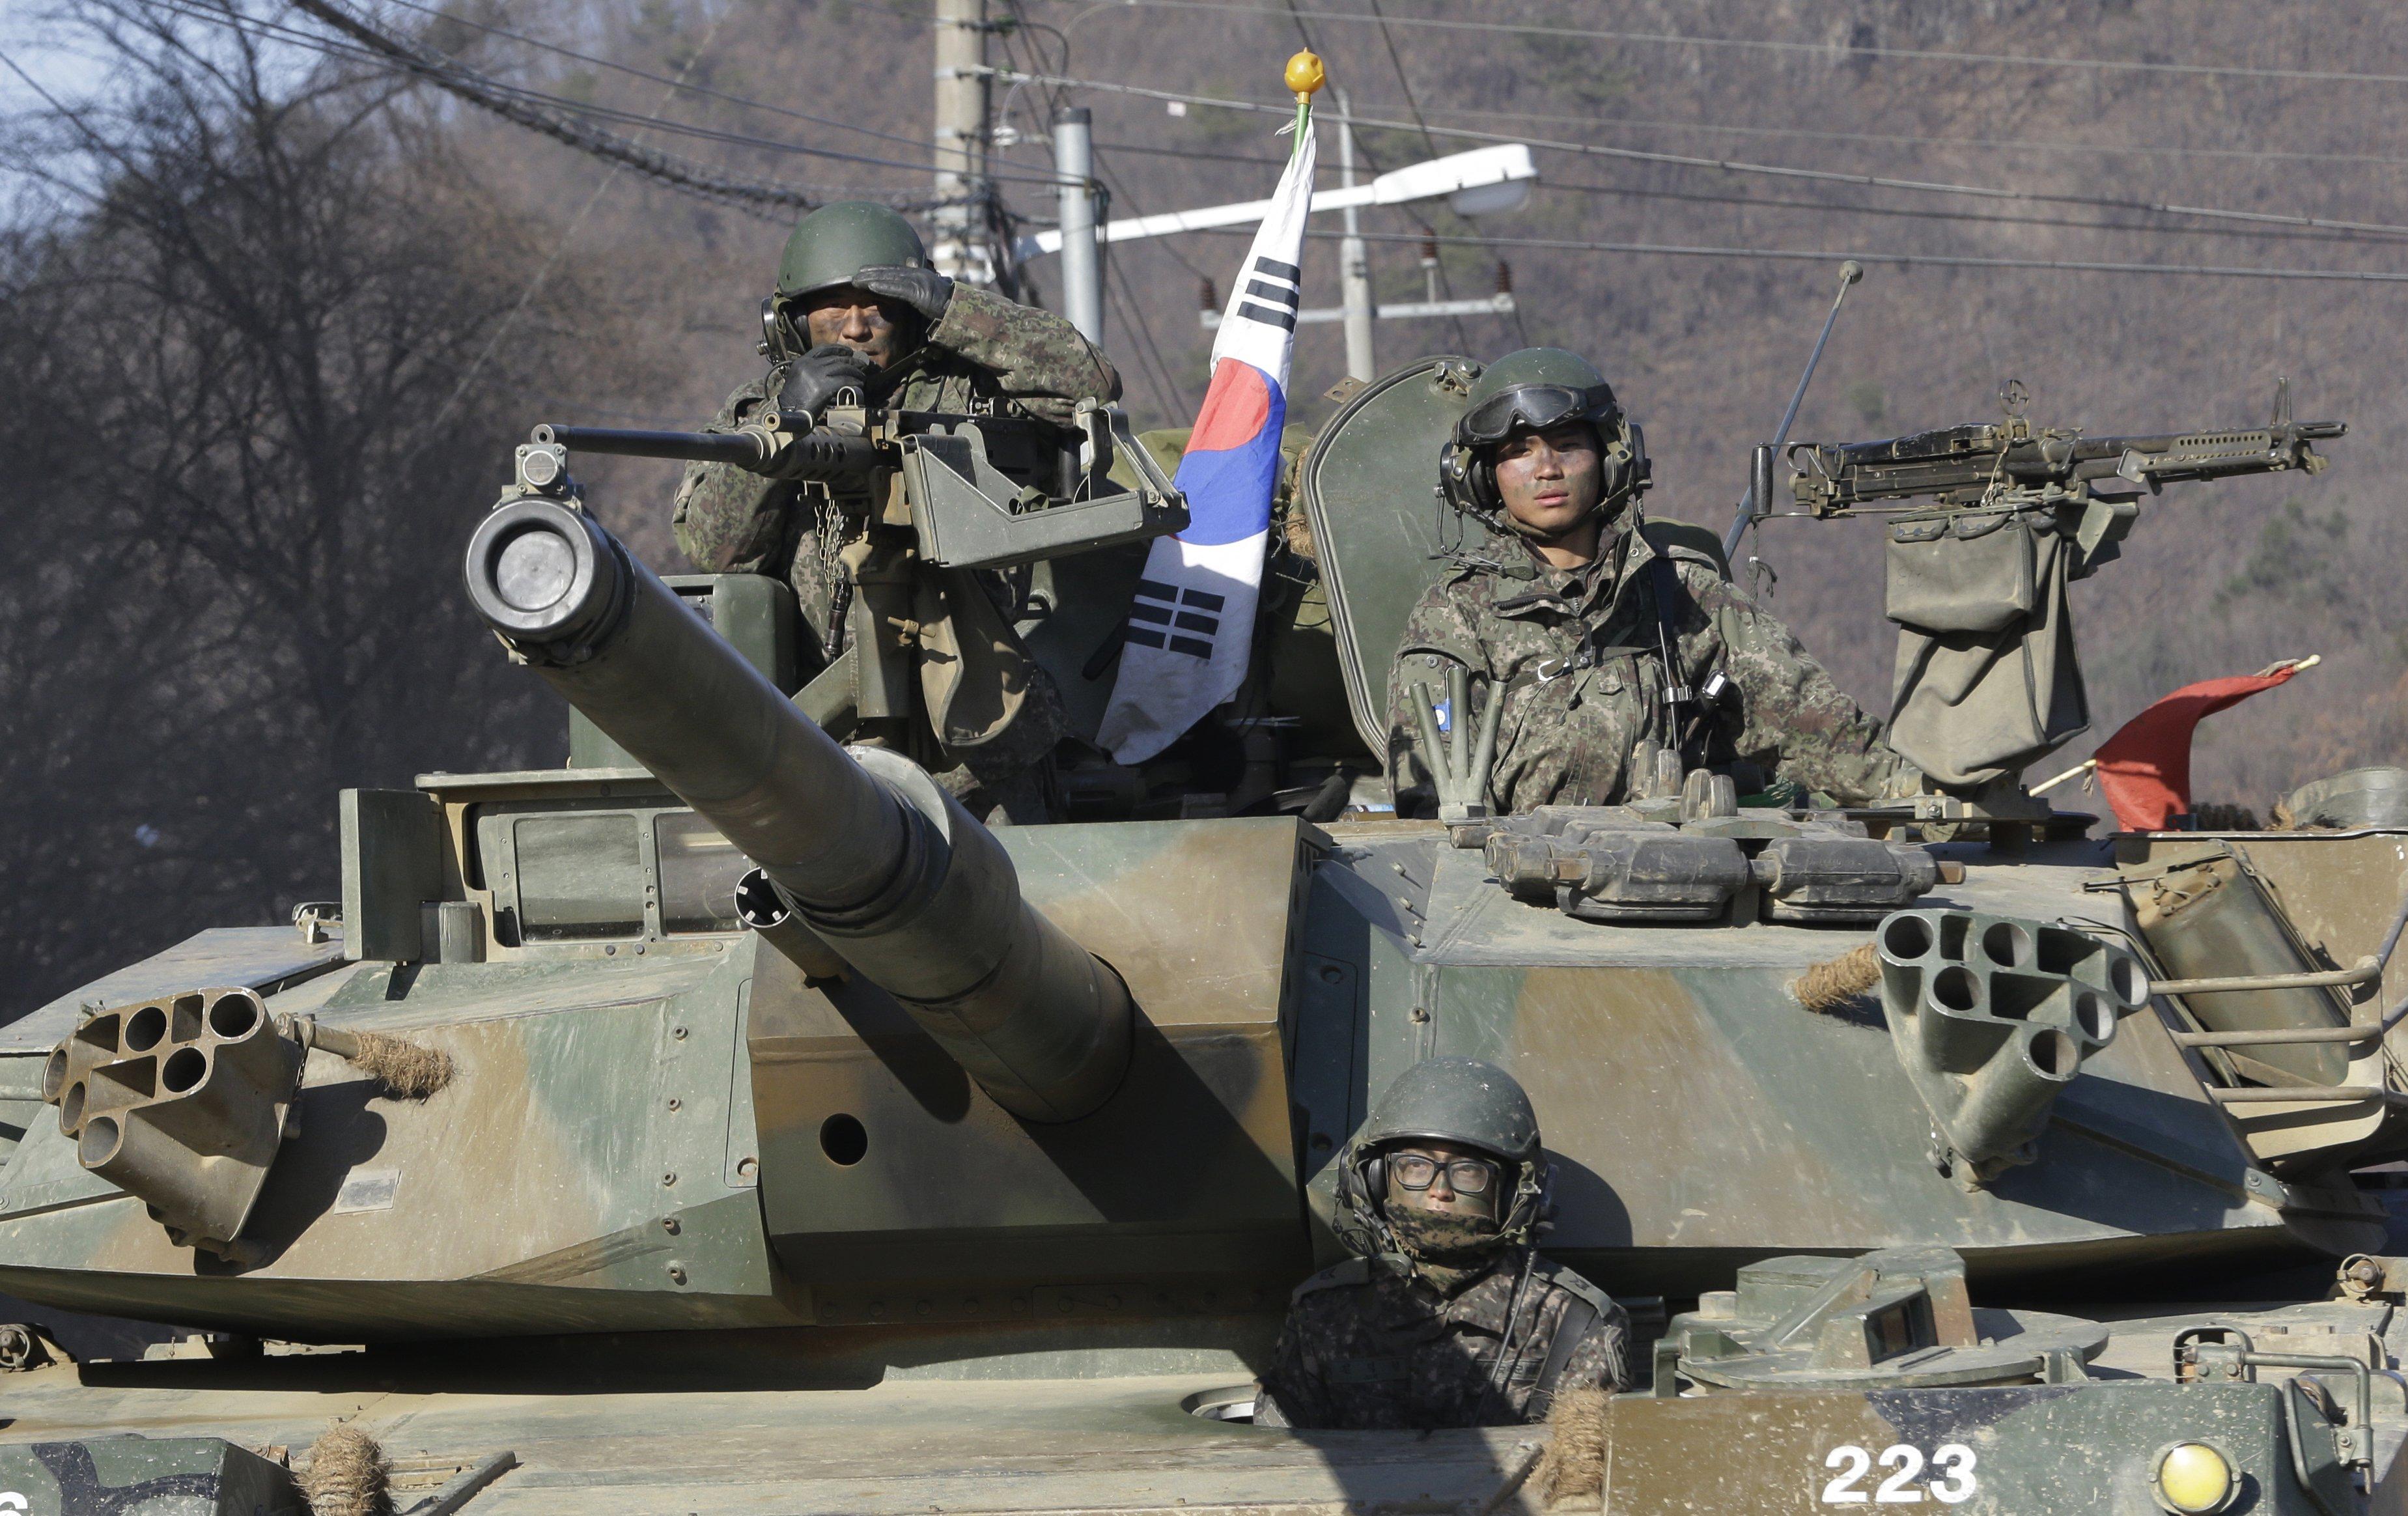 South Korean army soldiers ride a K-1 tank during the annual exercise with their U.S. counterparts in Paju, near the border with North Korea, on March 10, 2016.